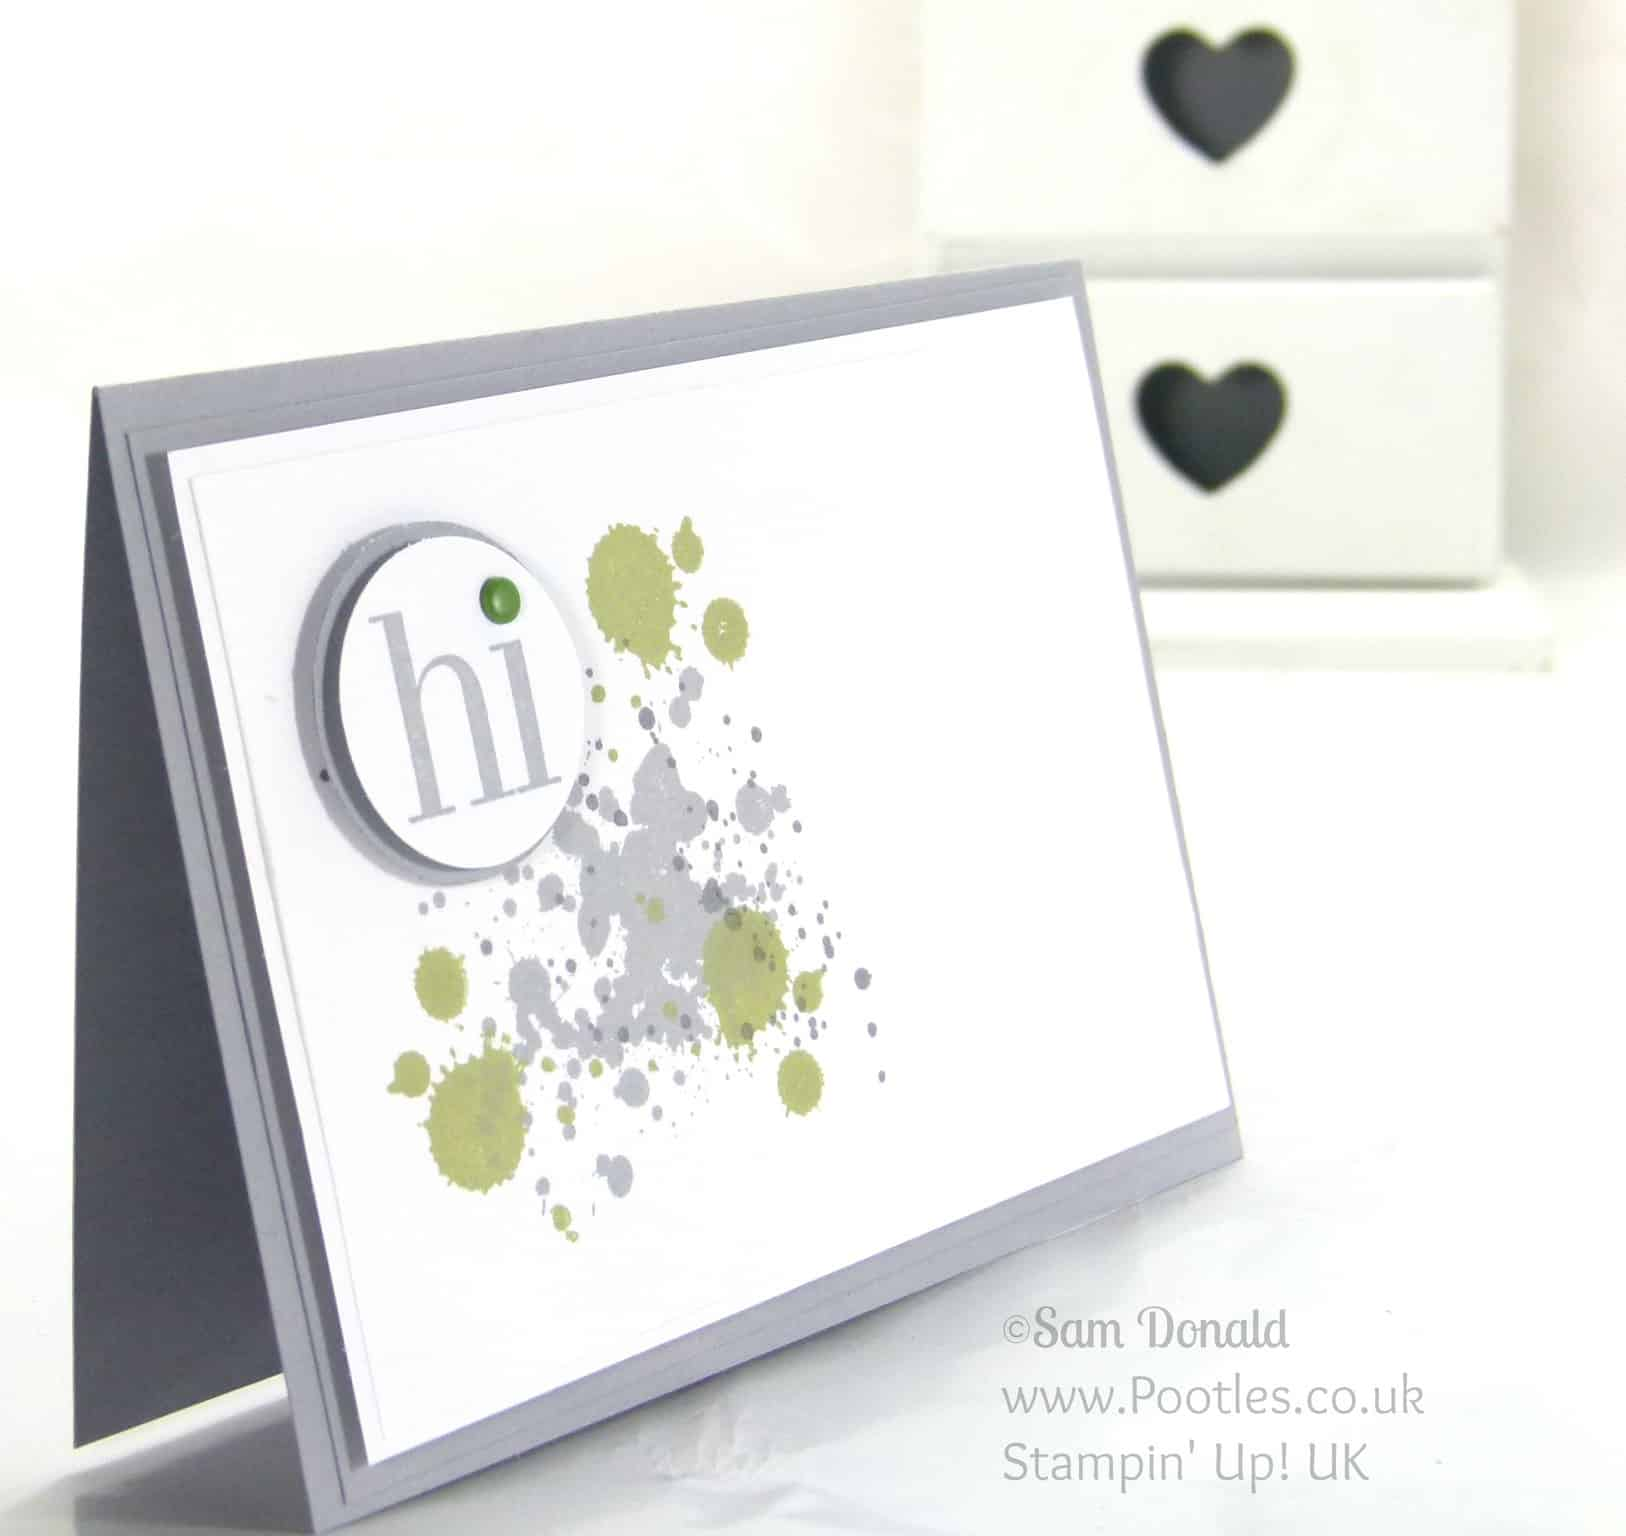 Stampin' Up! UK Independent Demonstrator Pootles. Pear Pizzazz and Gorgeous Grunge. Never be afraid of the white space....